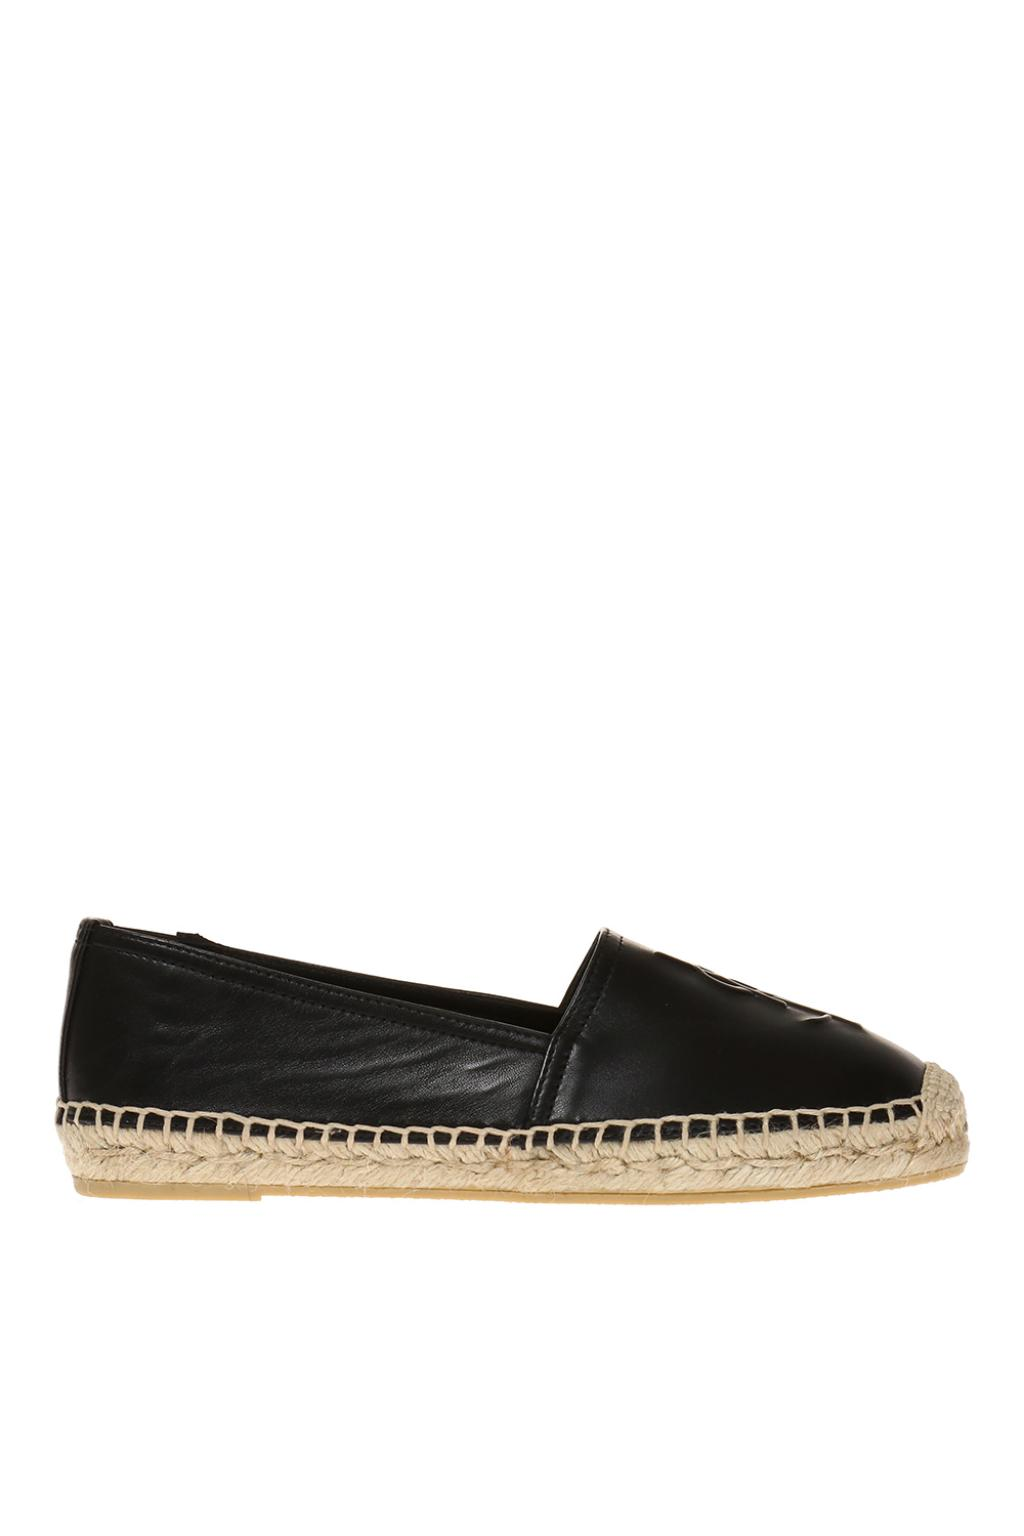 Saint Laurent Espadrilles with logo